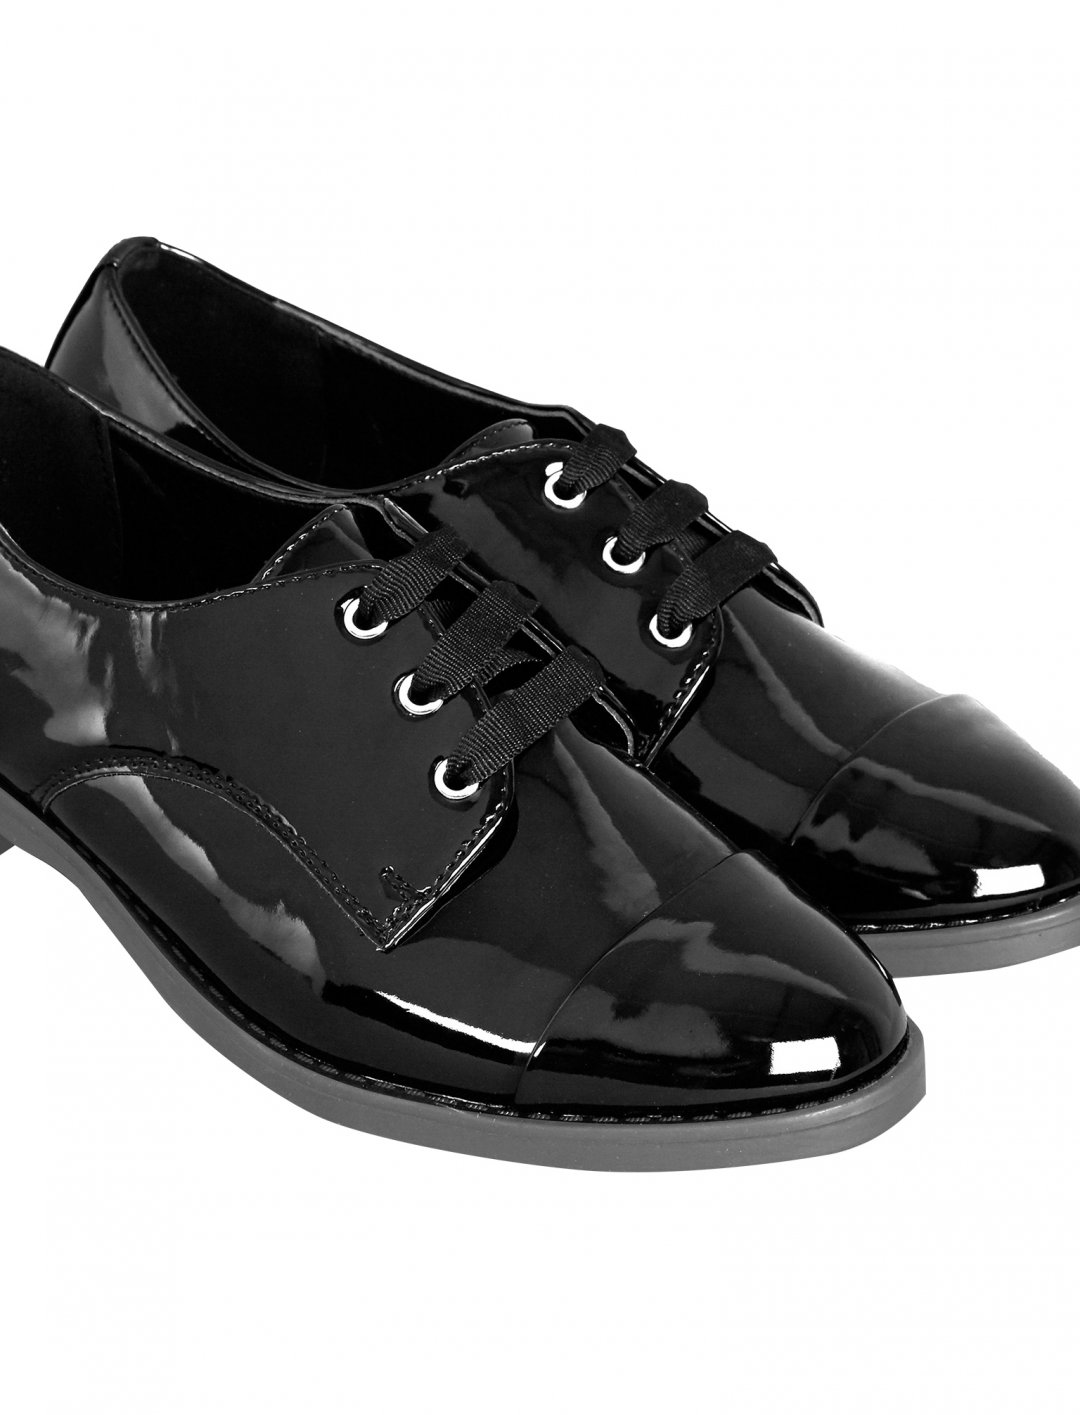 Patent Lace Up Brogues Shoes New Look